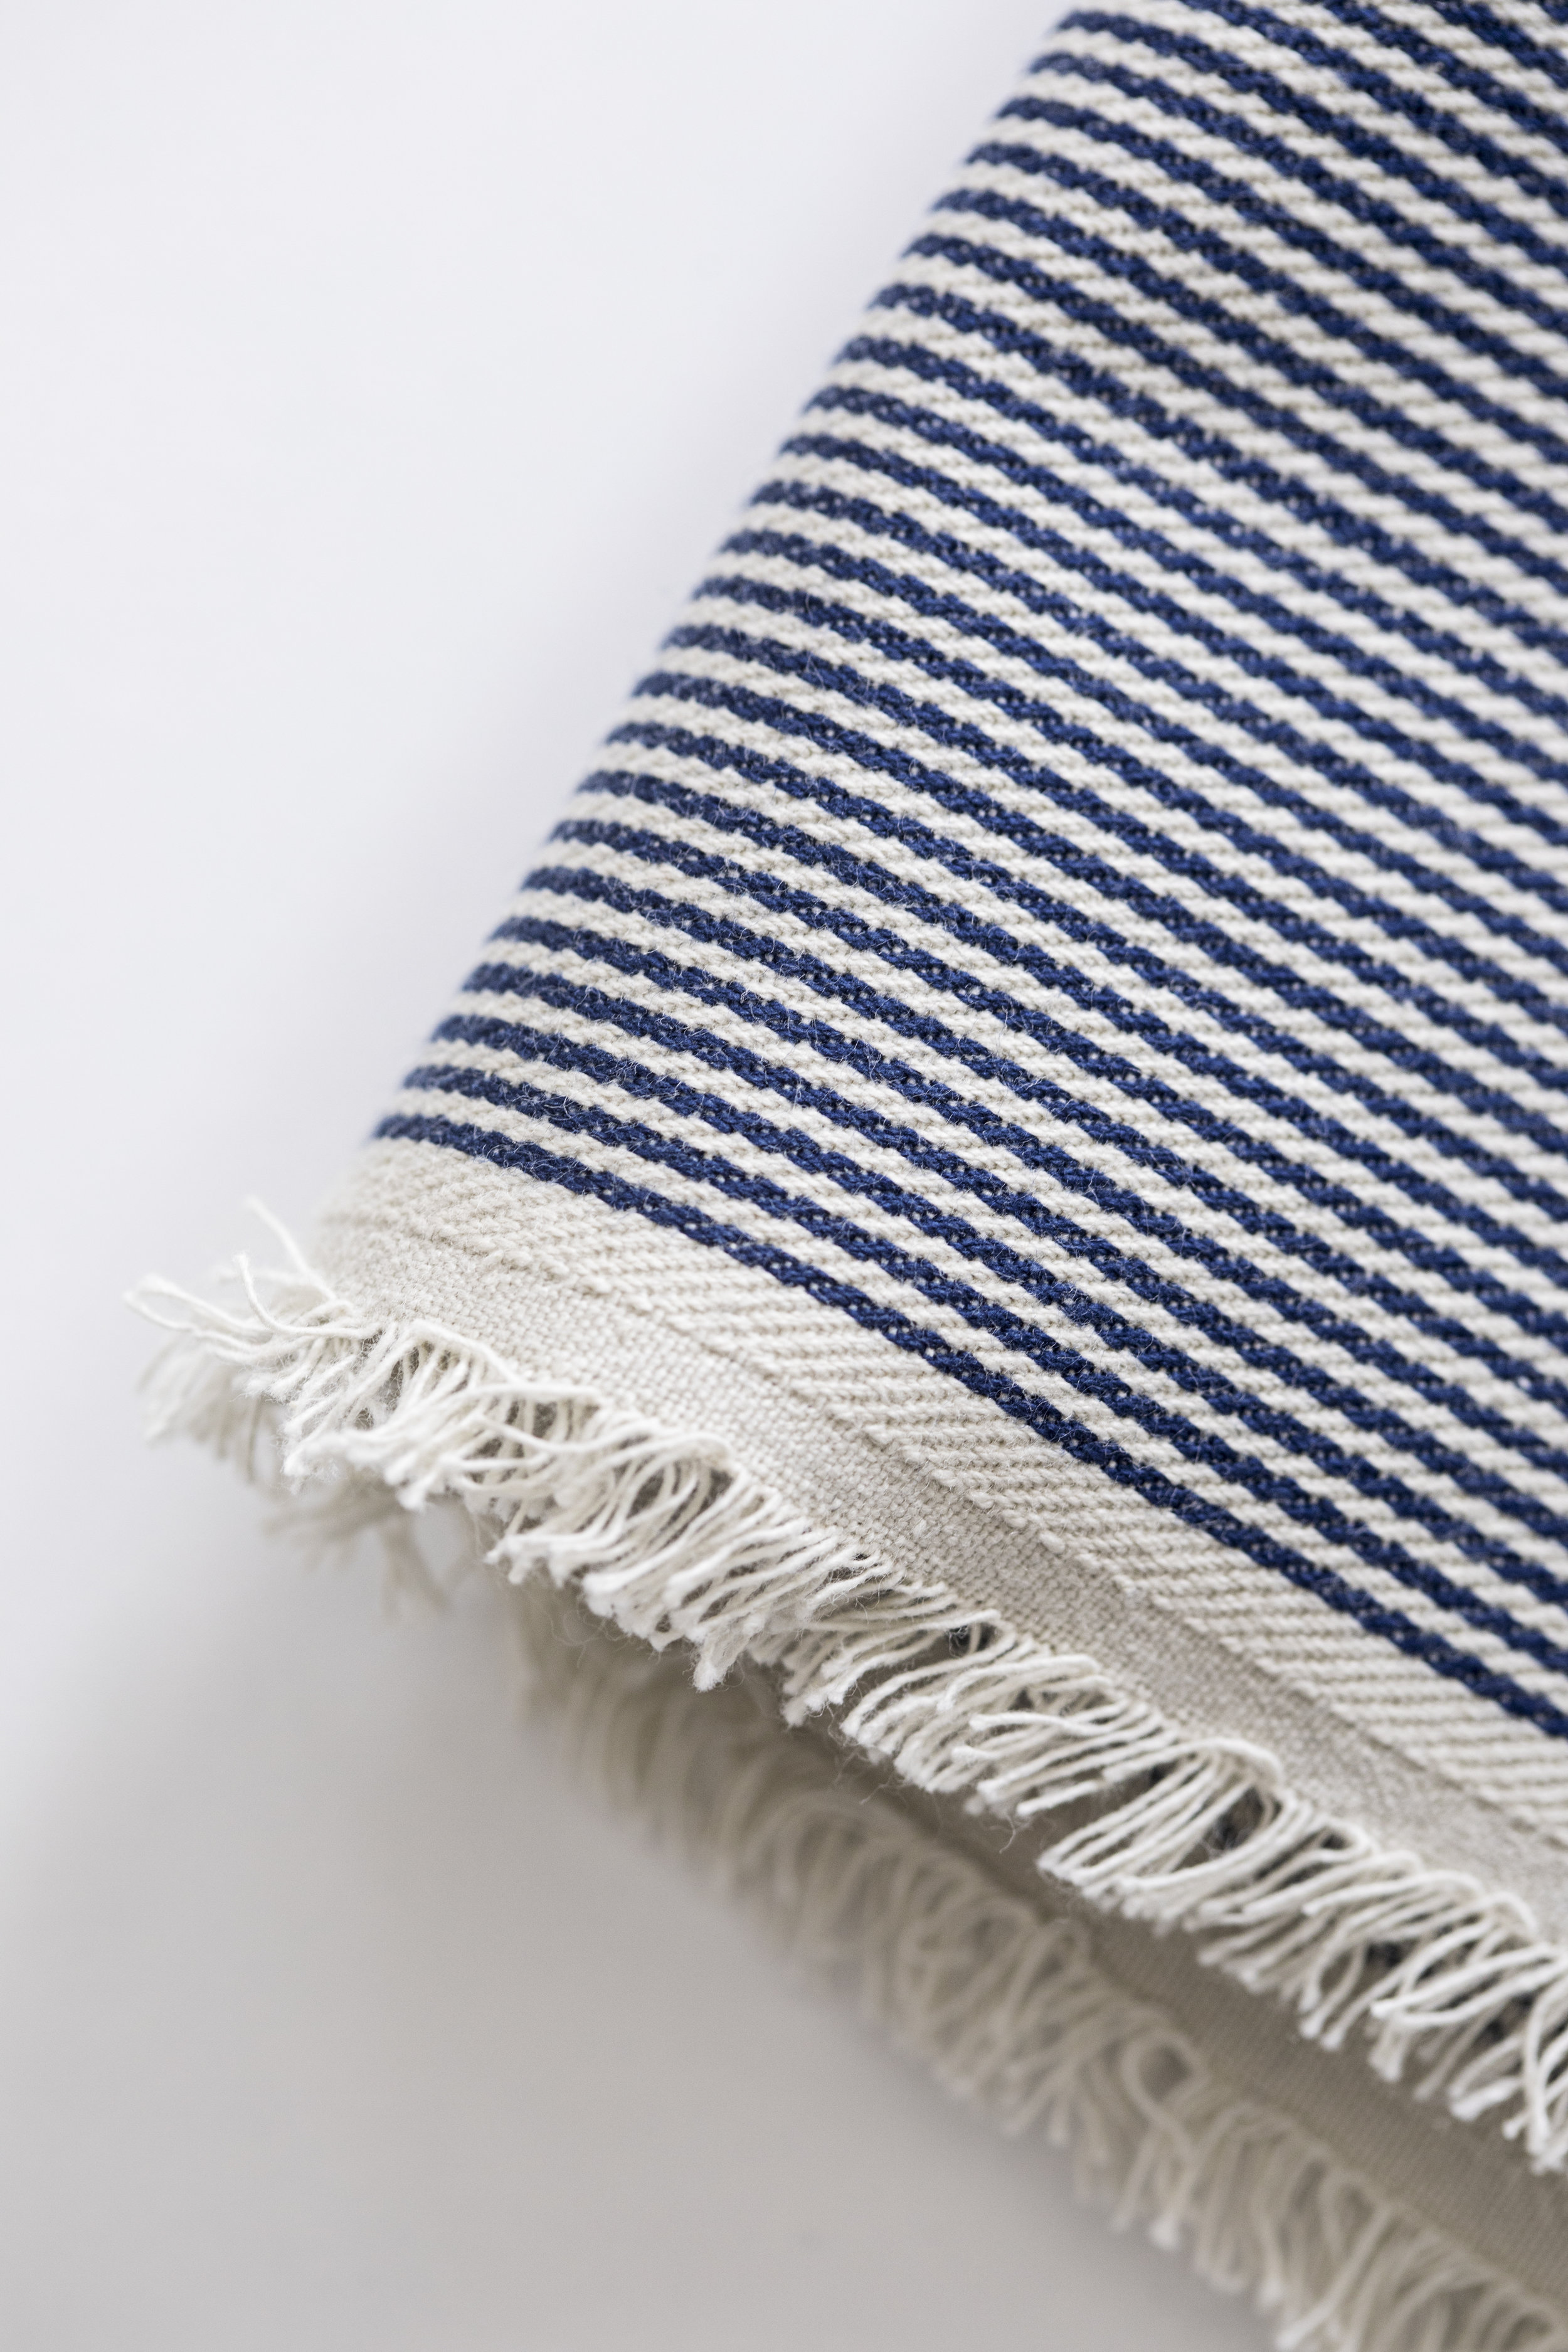 selvedge edge railroad stripe tea towel detail / heirloomed